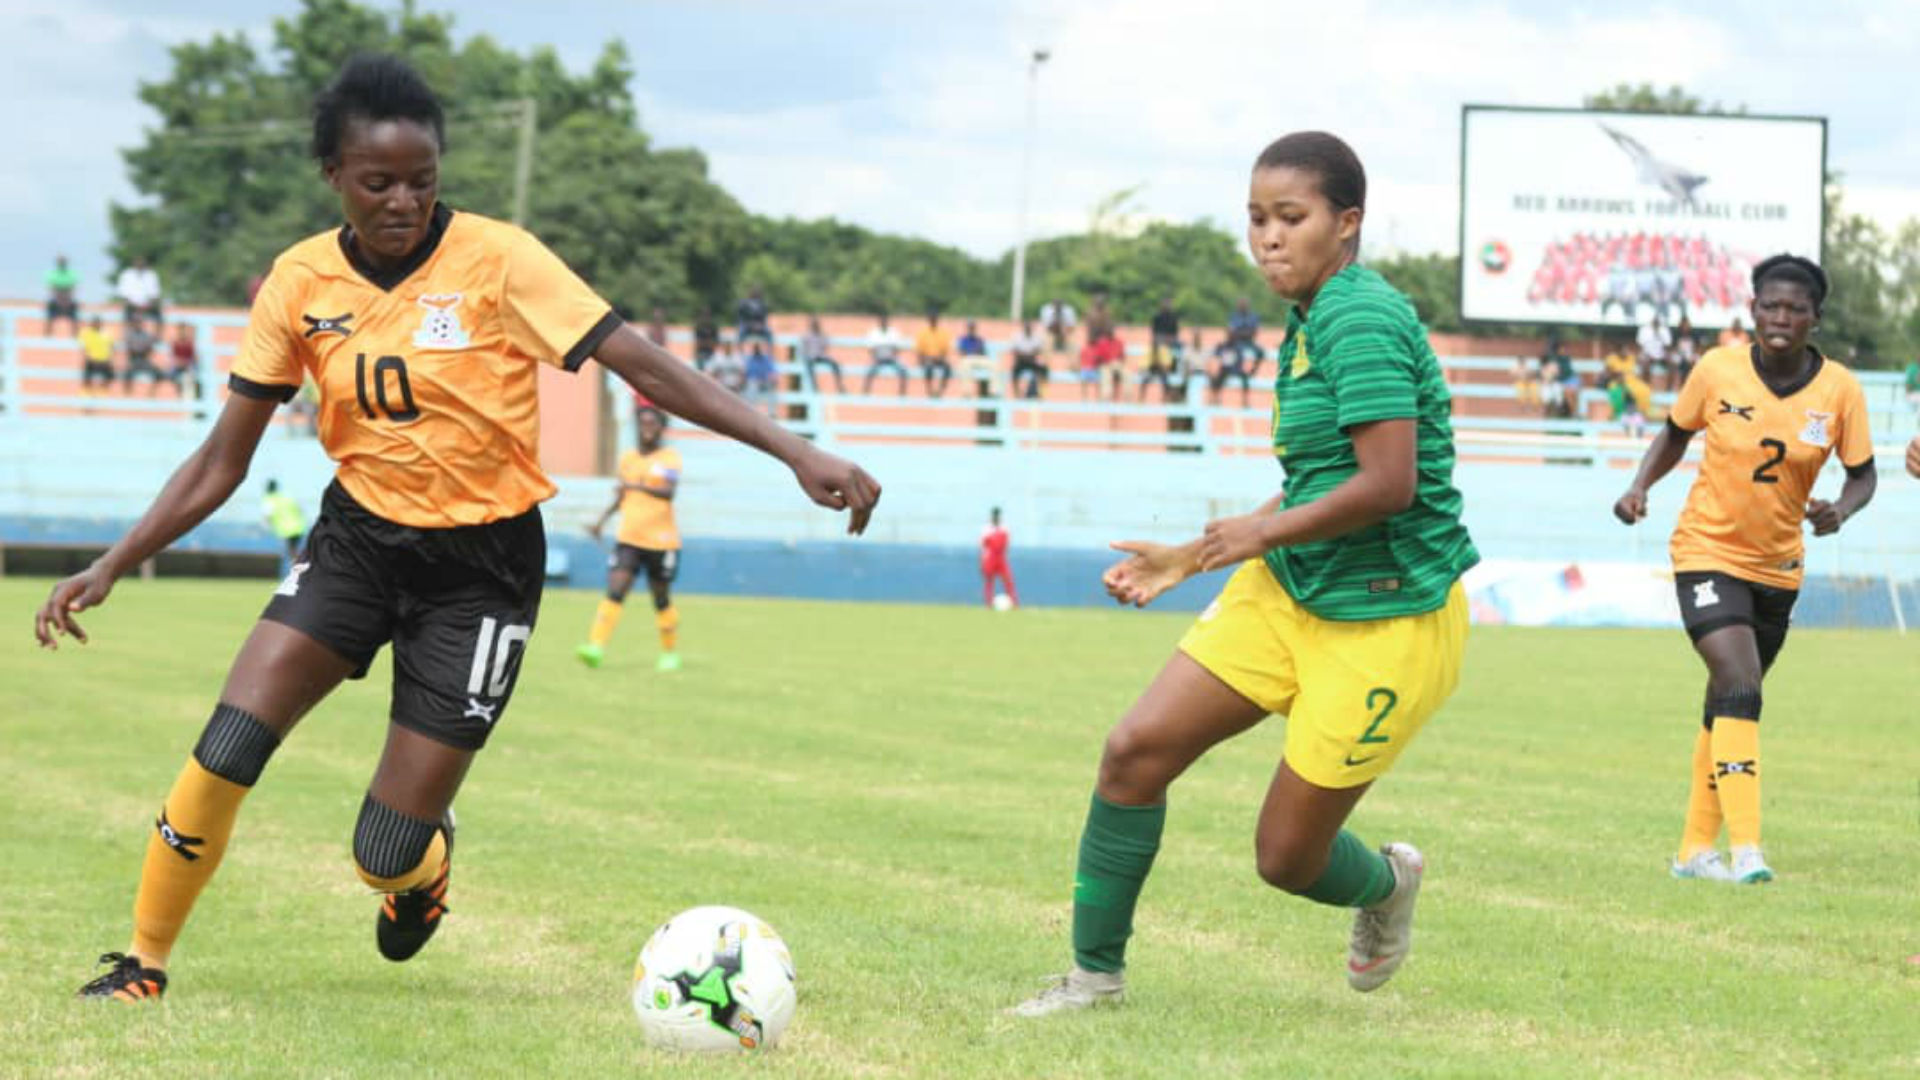 South Africa 3-0 Zambia (3-2): Bantwana advance into U17 Women's World Cup second round